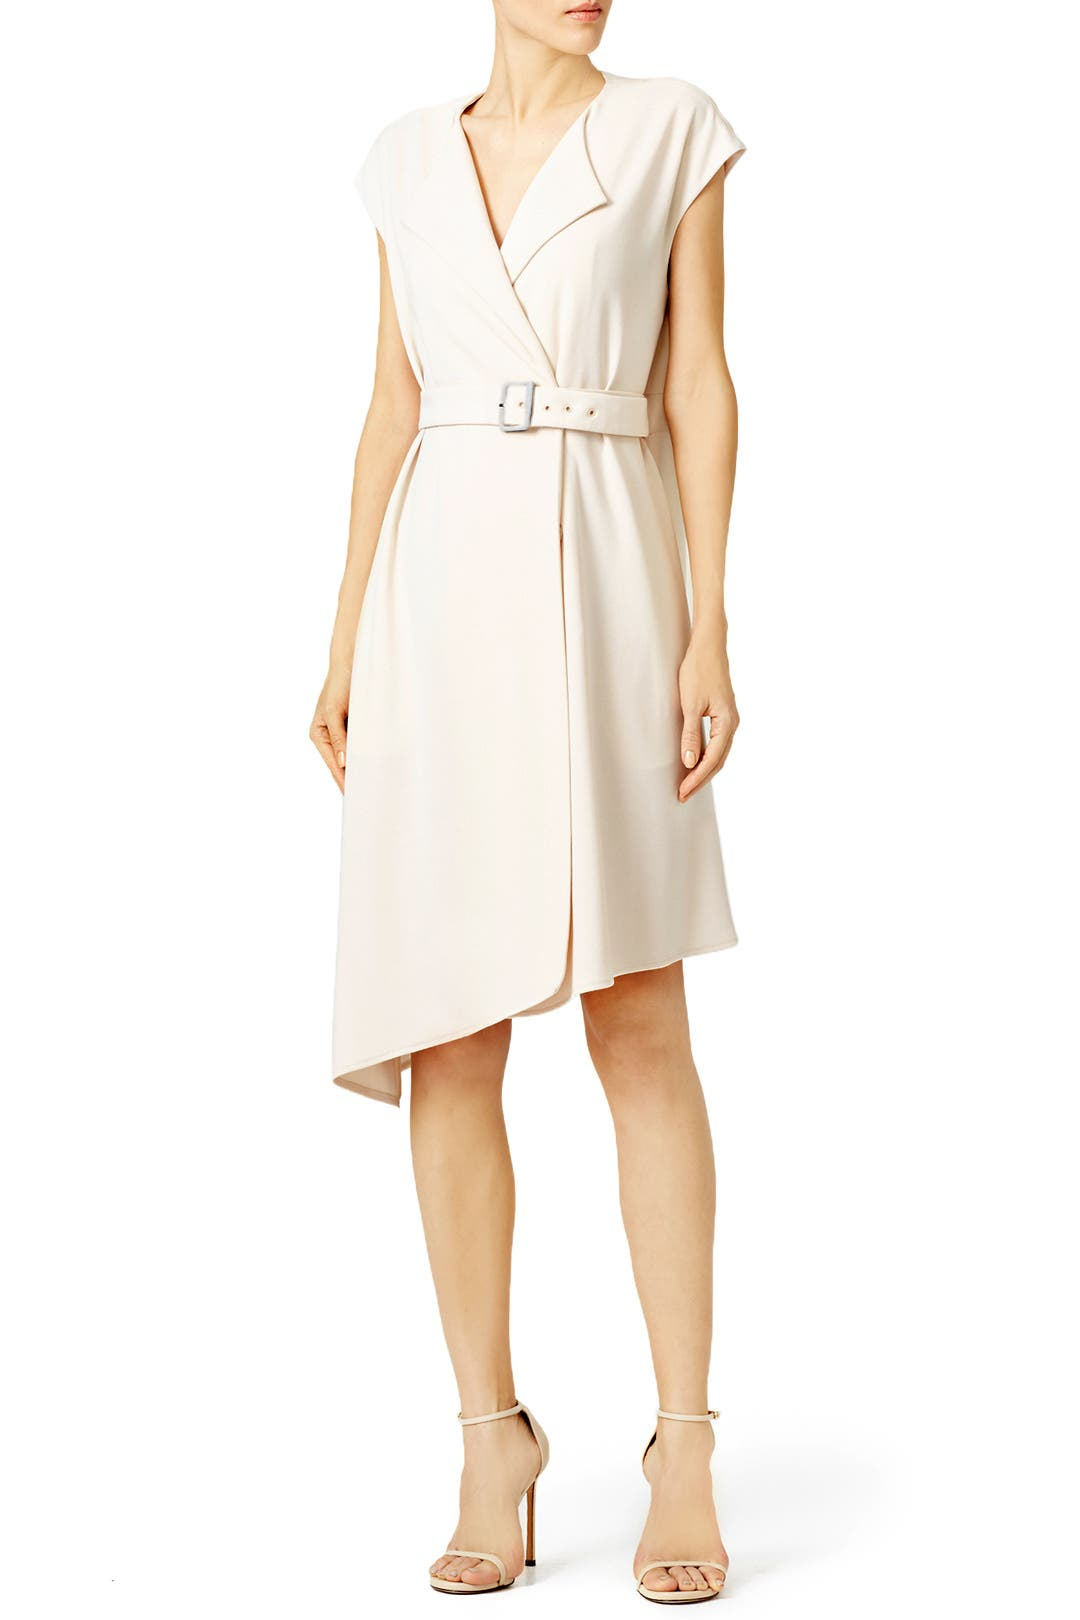 Tibi Beige Structured Crepe Trench Dress